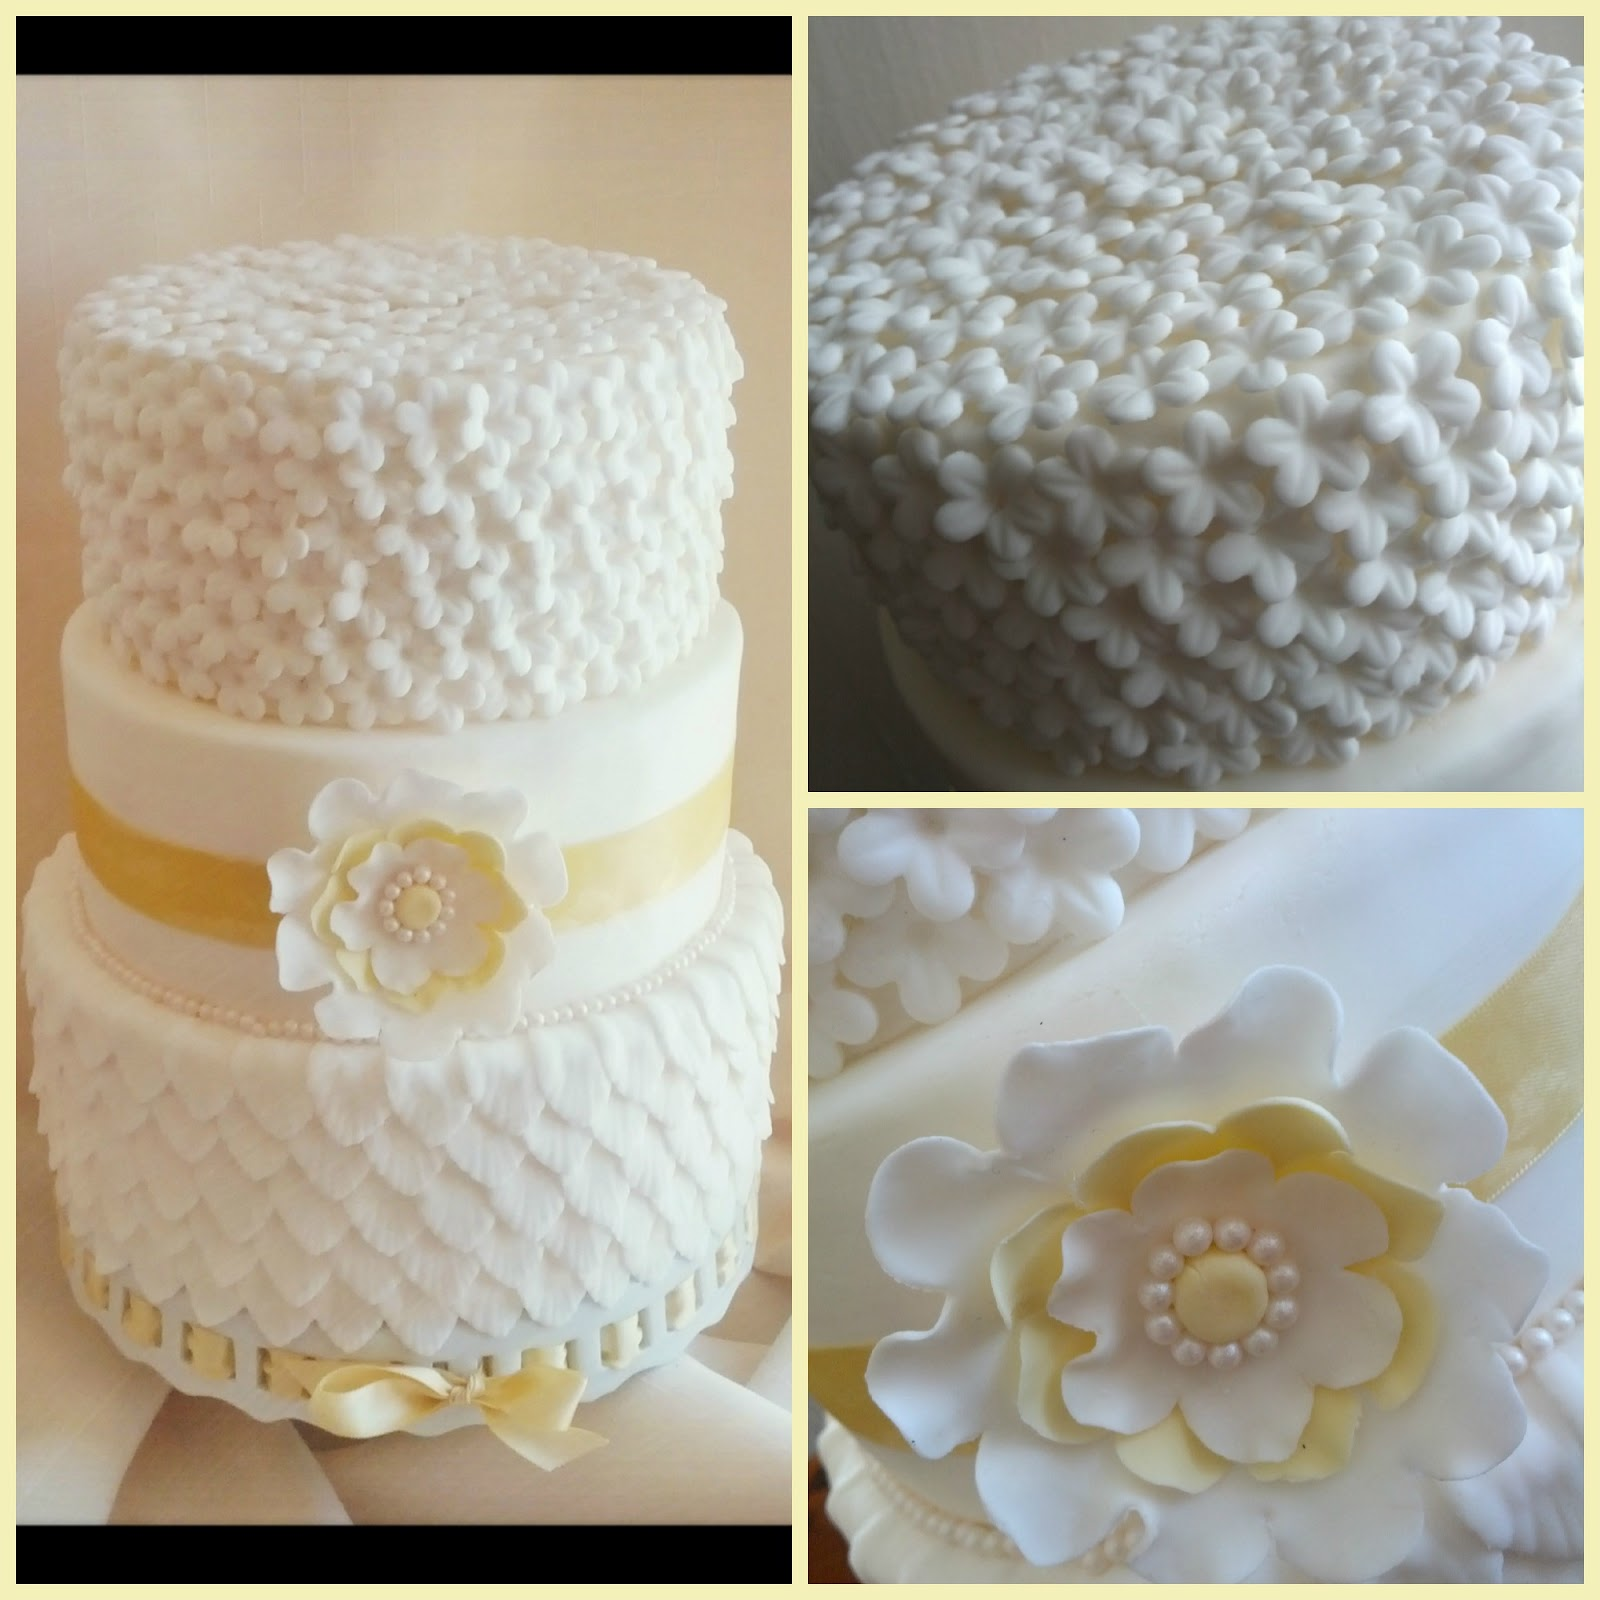 Second Generation Cake Design: Spring Wedding Cake